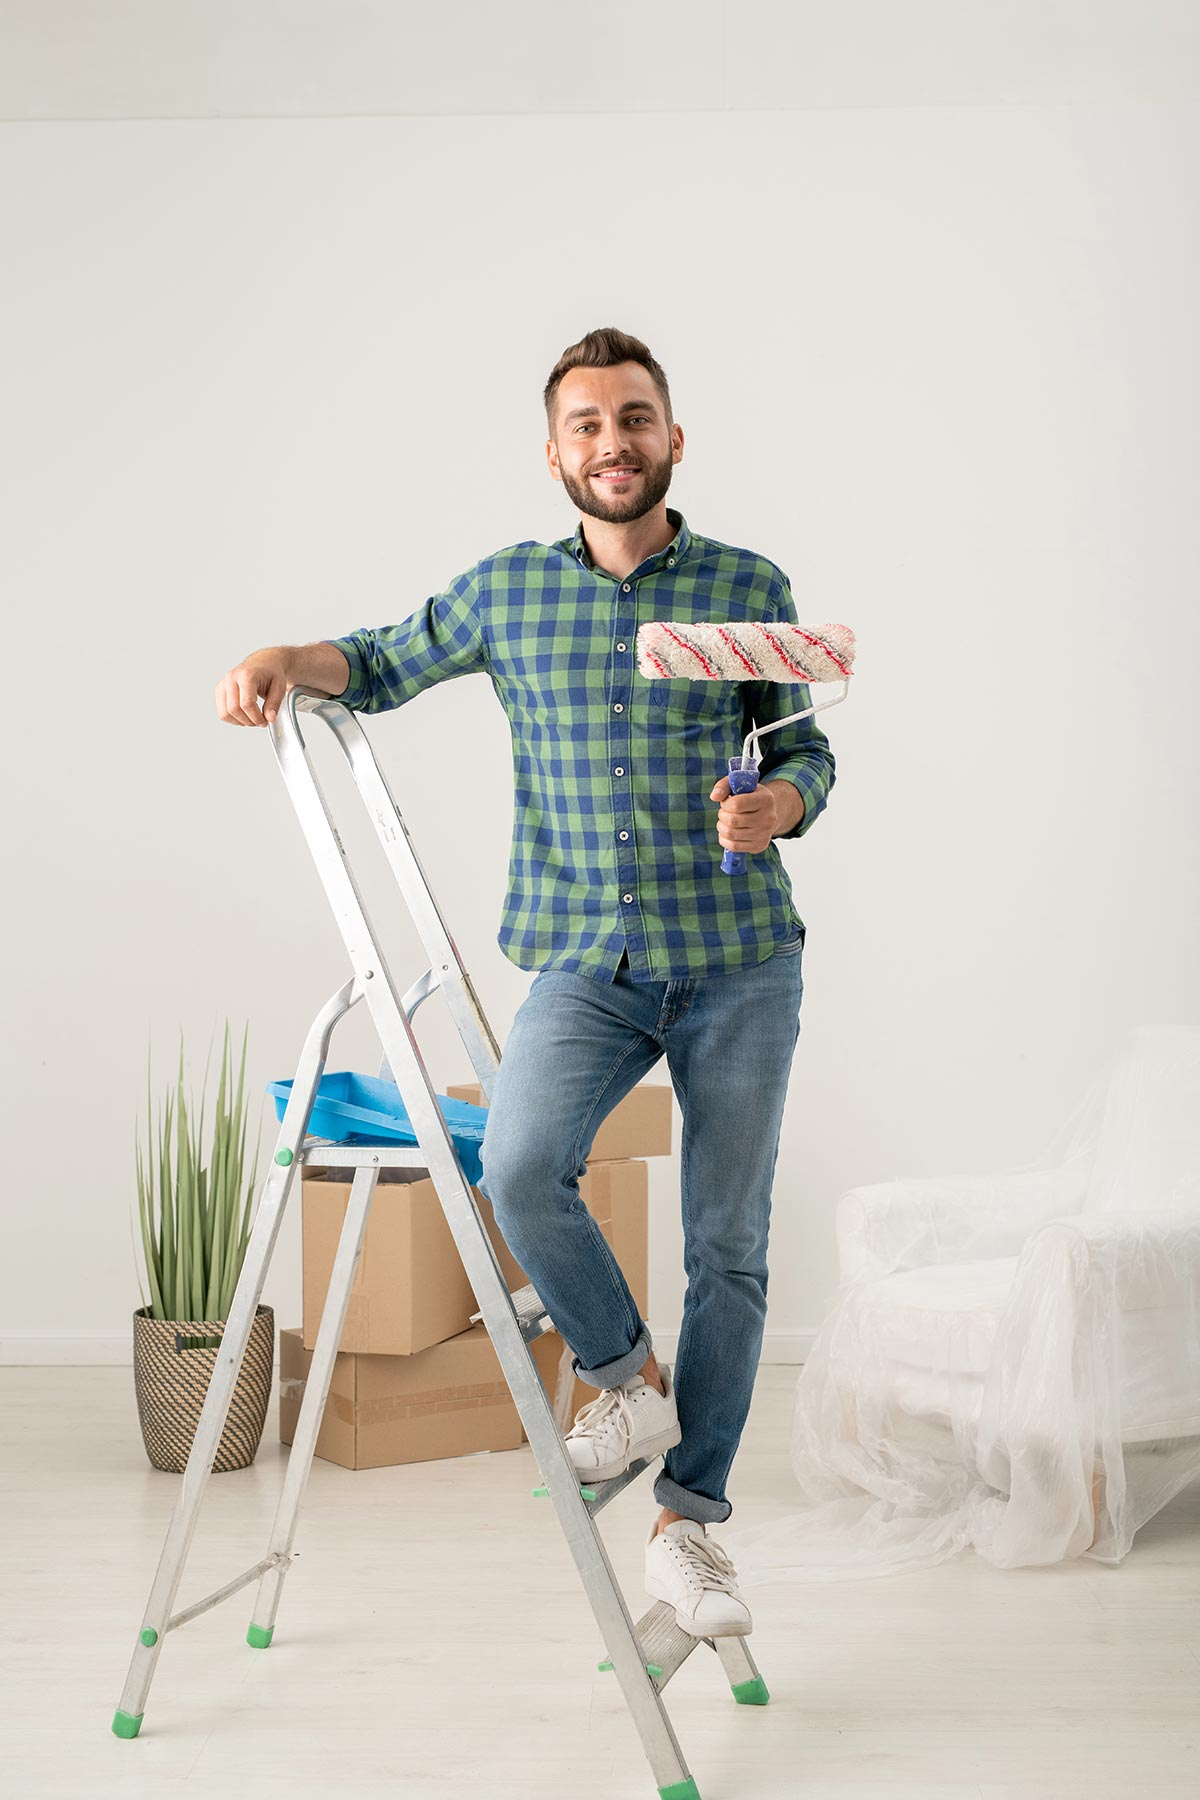 cheerful-man-with-paint-roller-Z5XMNCM